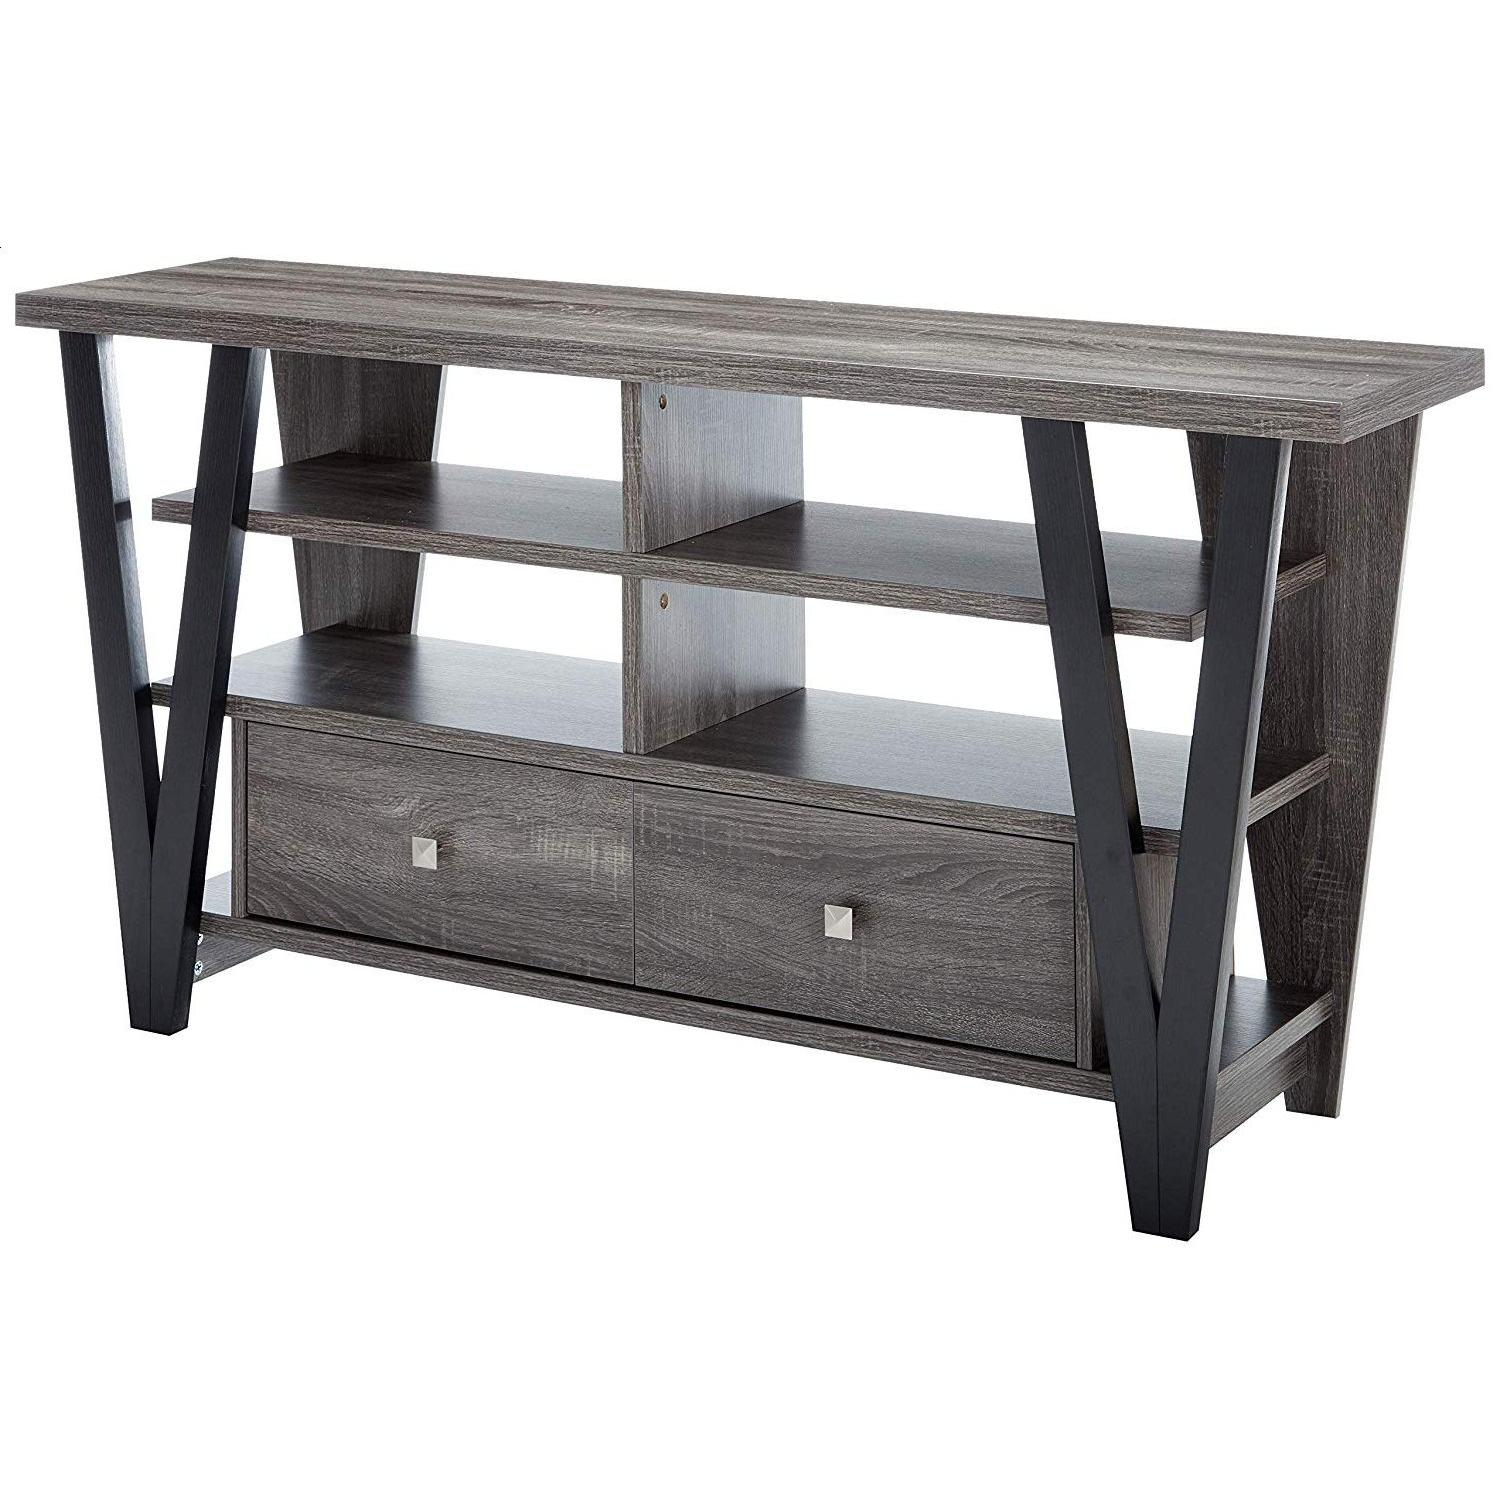 Modern TV Stand in Grey-Black Finish w/ Shelves & Drawers - image-3